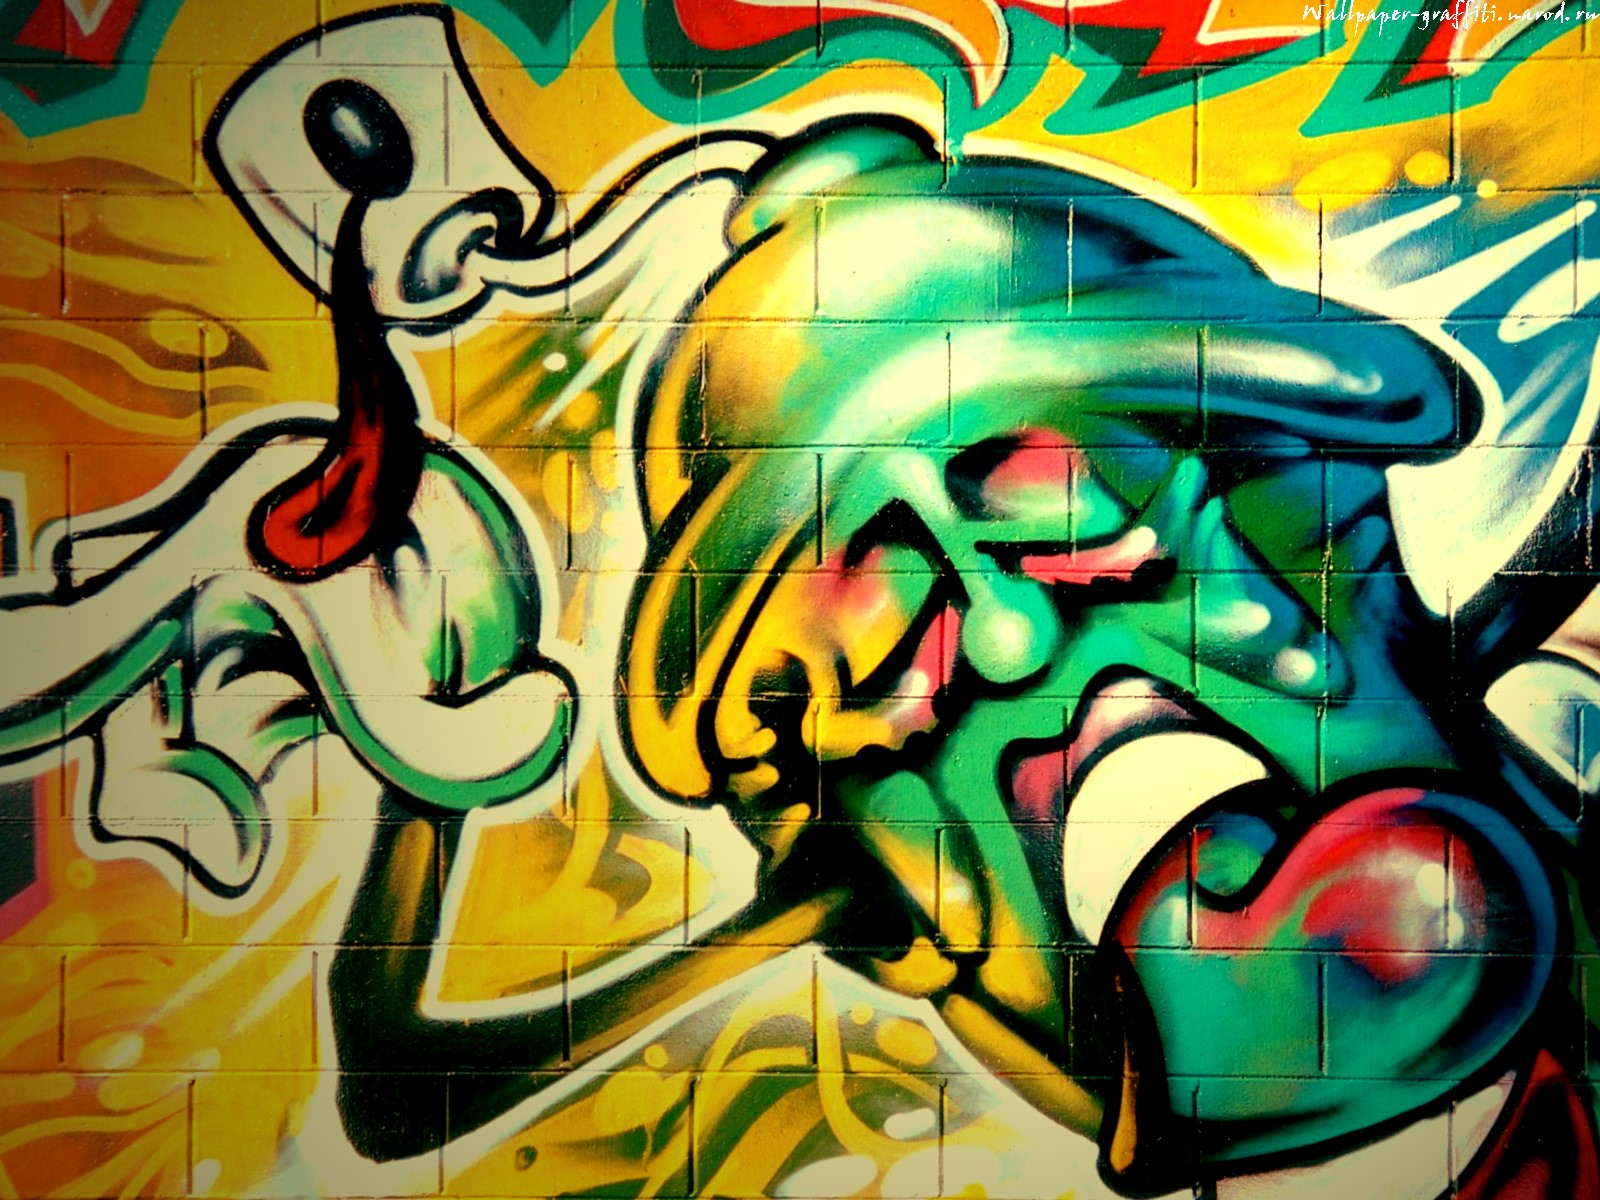 graffiti wallpaper 1 graffiti wallpaper 2 ...